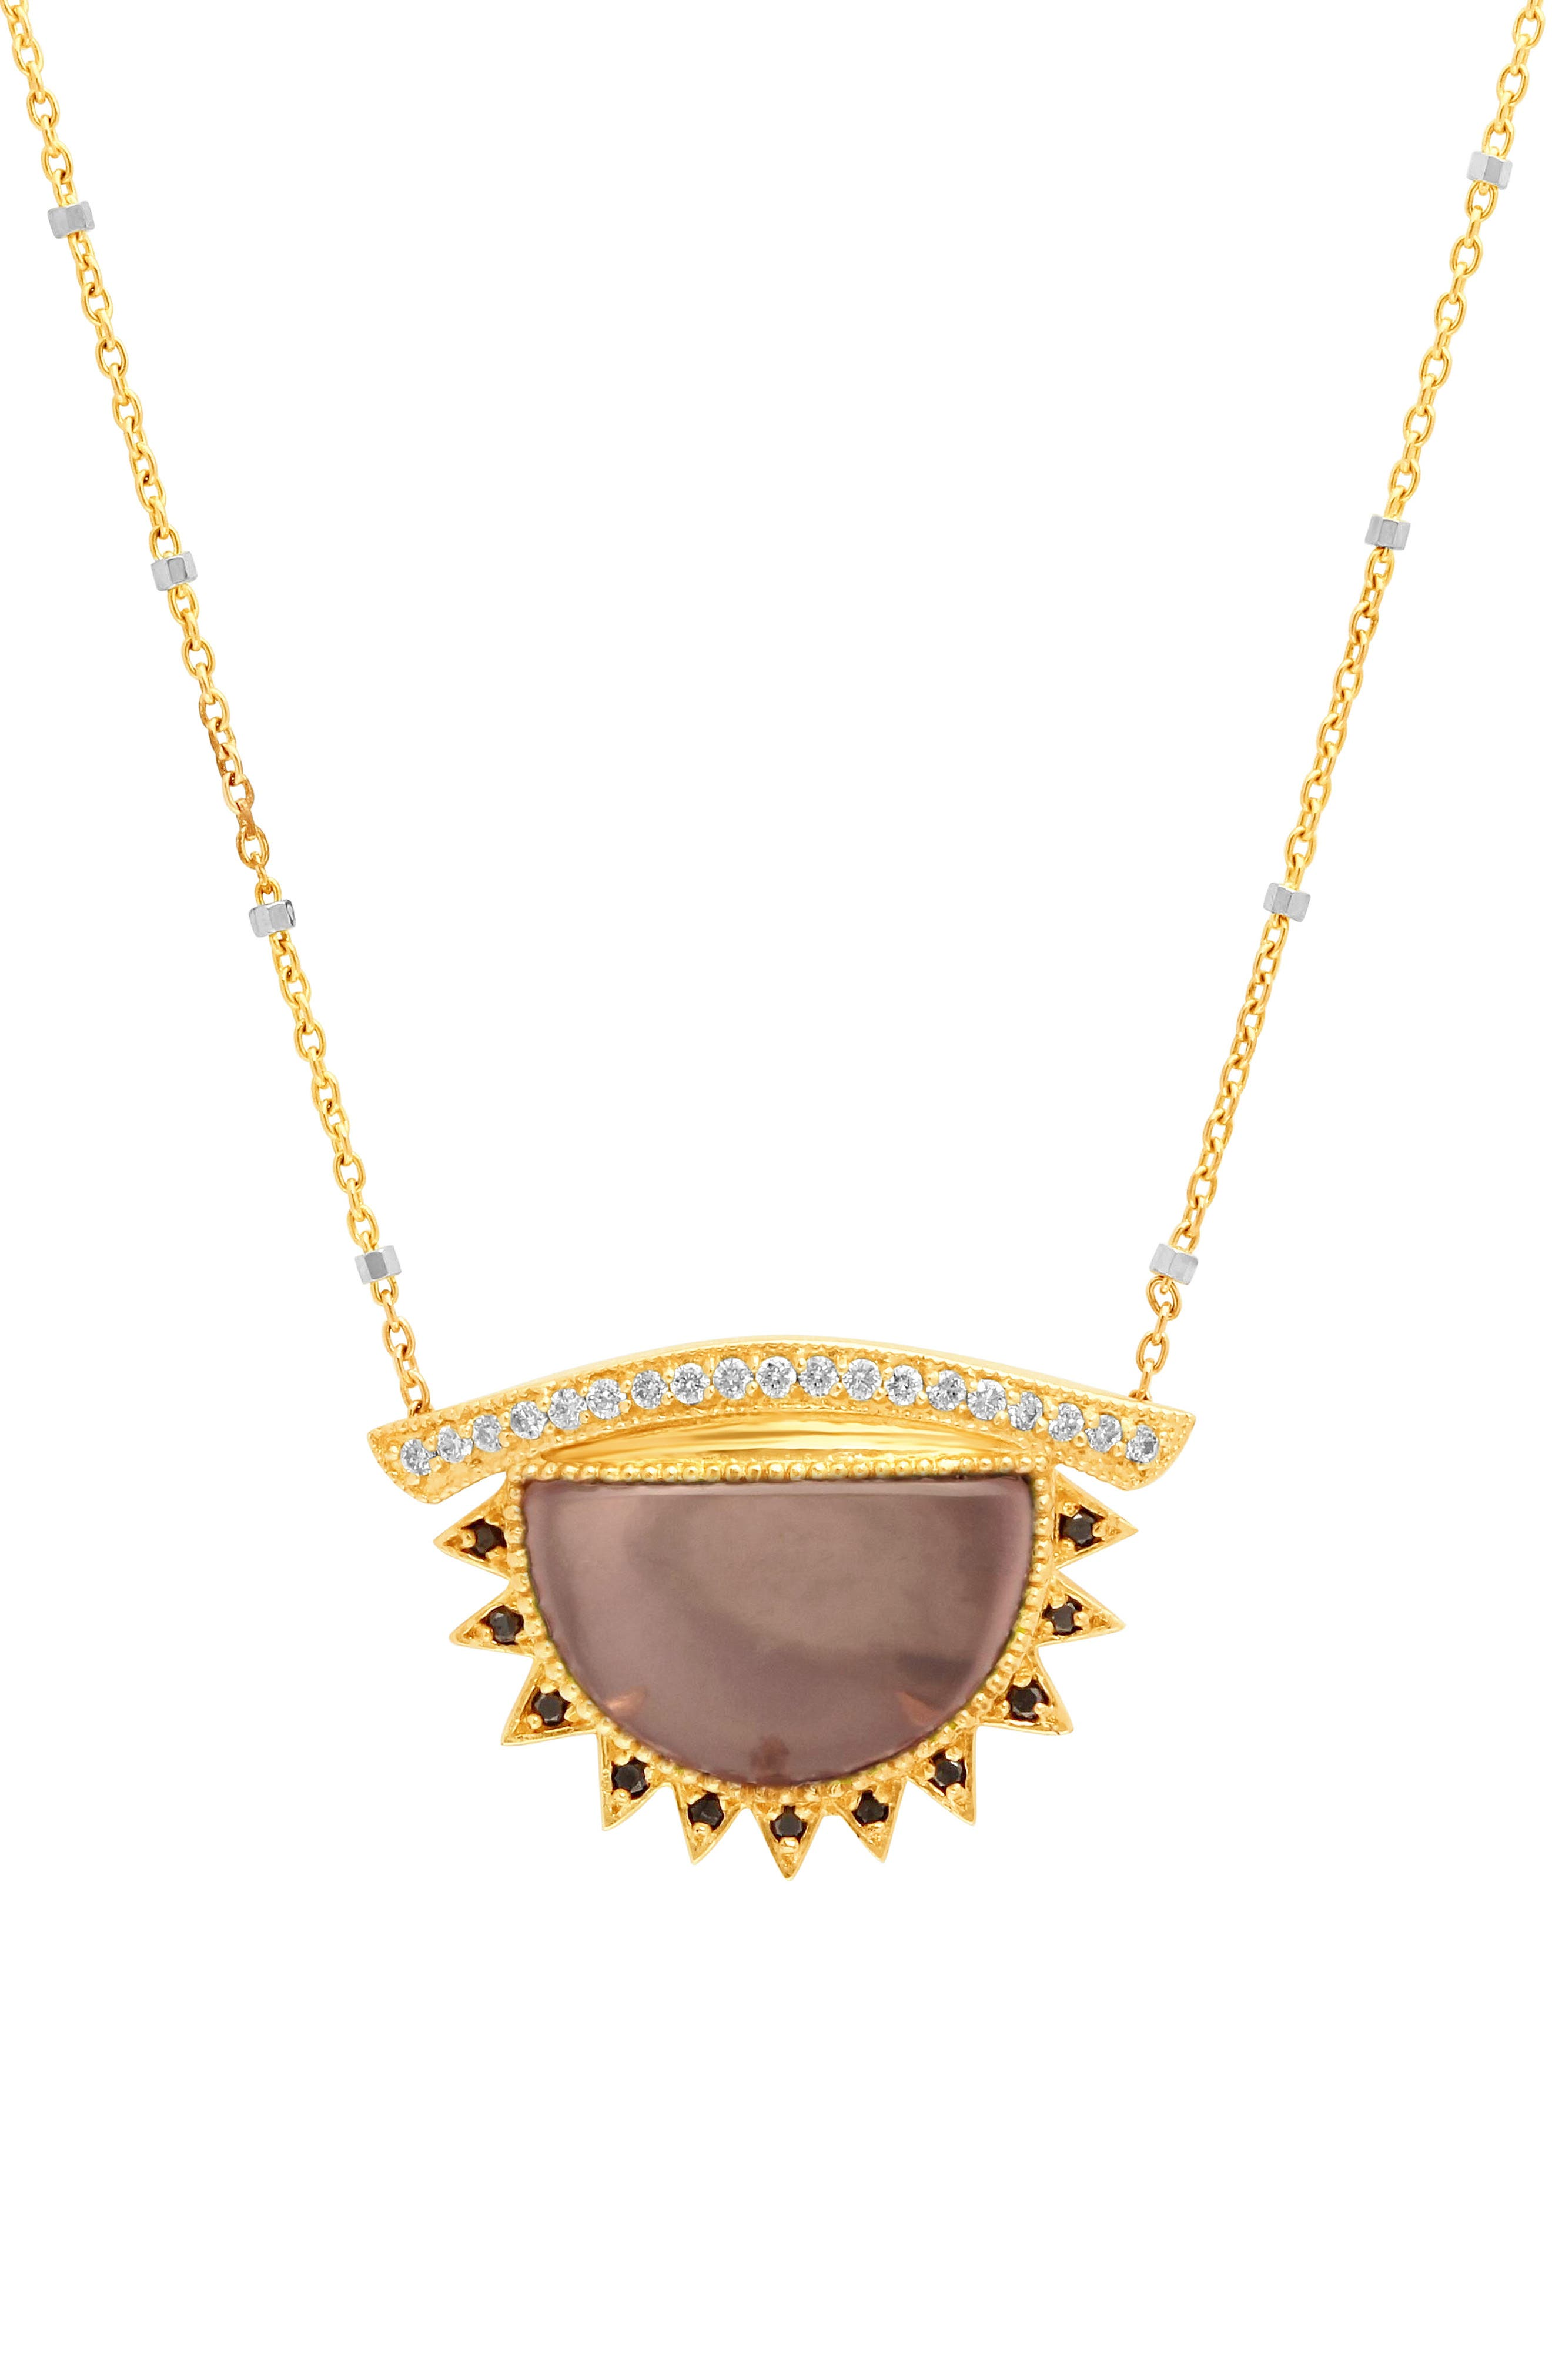 Congés 'I See You See Love' Small Rose Quartz Third Eye Necklace,                         Main,                         color, YELLOW GOLD